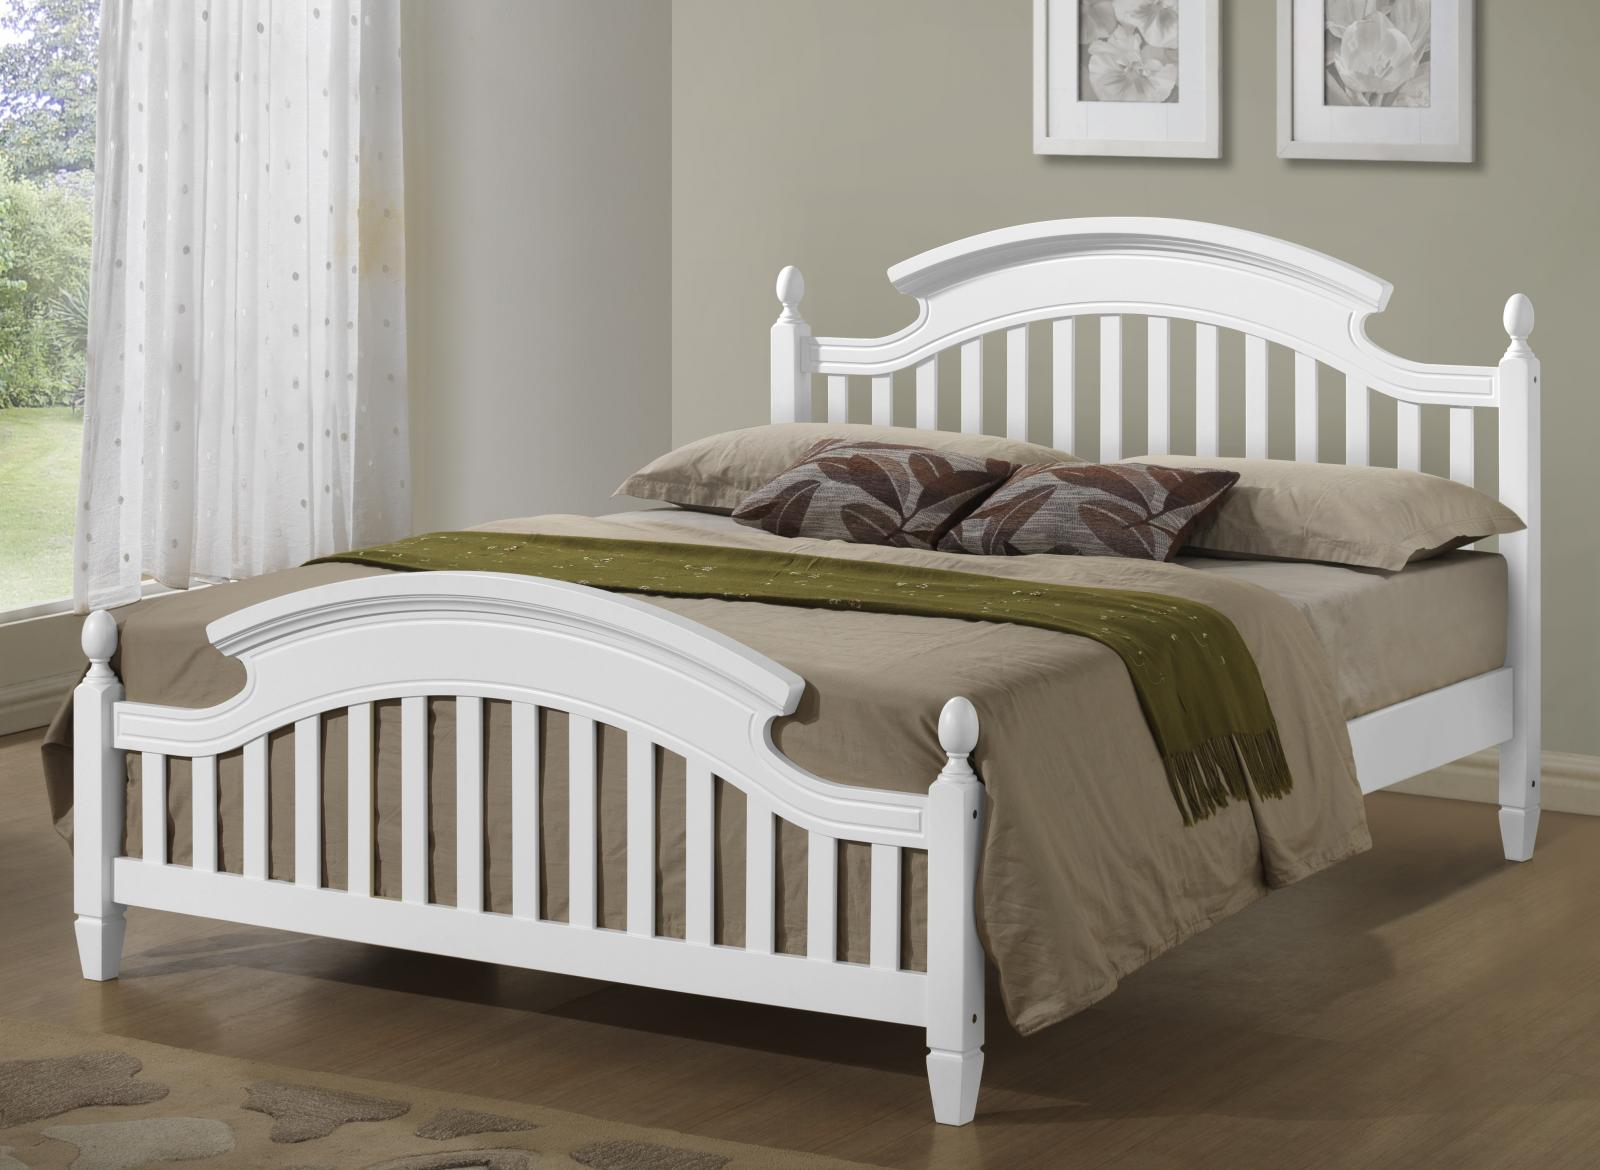 White Double Bed With Mattress White Wooden Arched Headboard Bed Frame In 3ft Single 4ft6